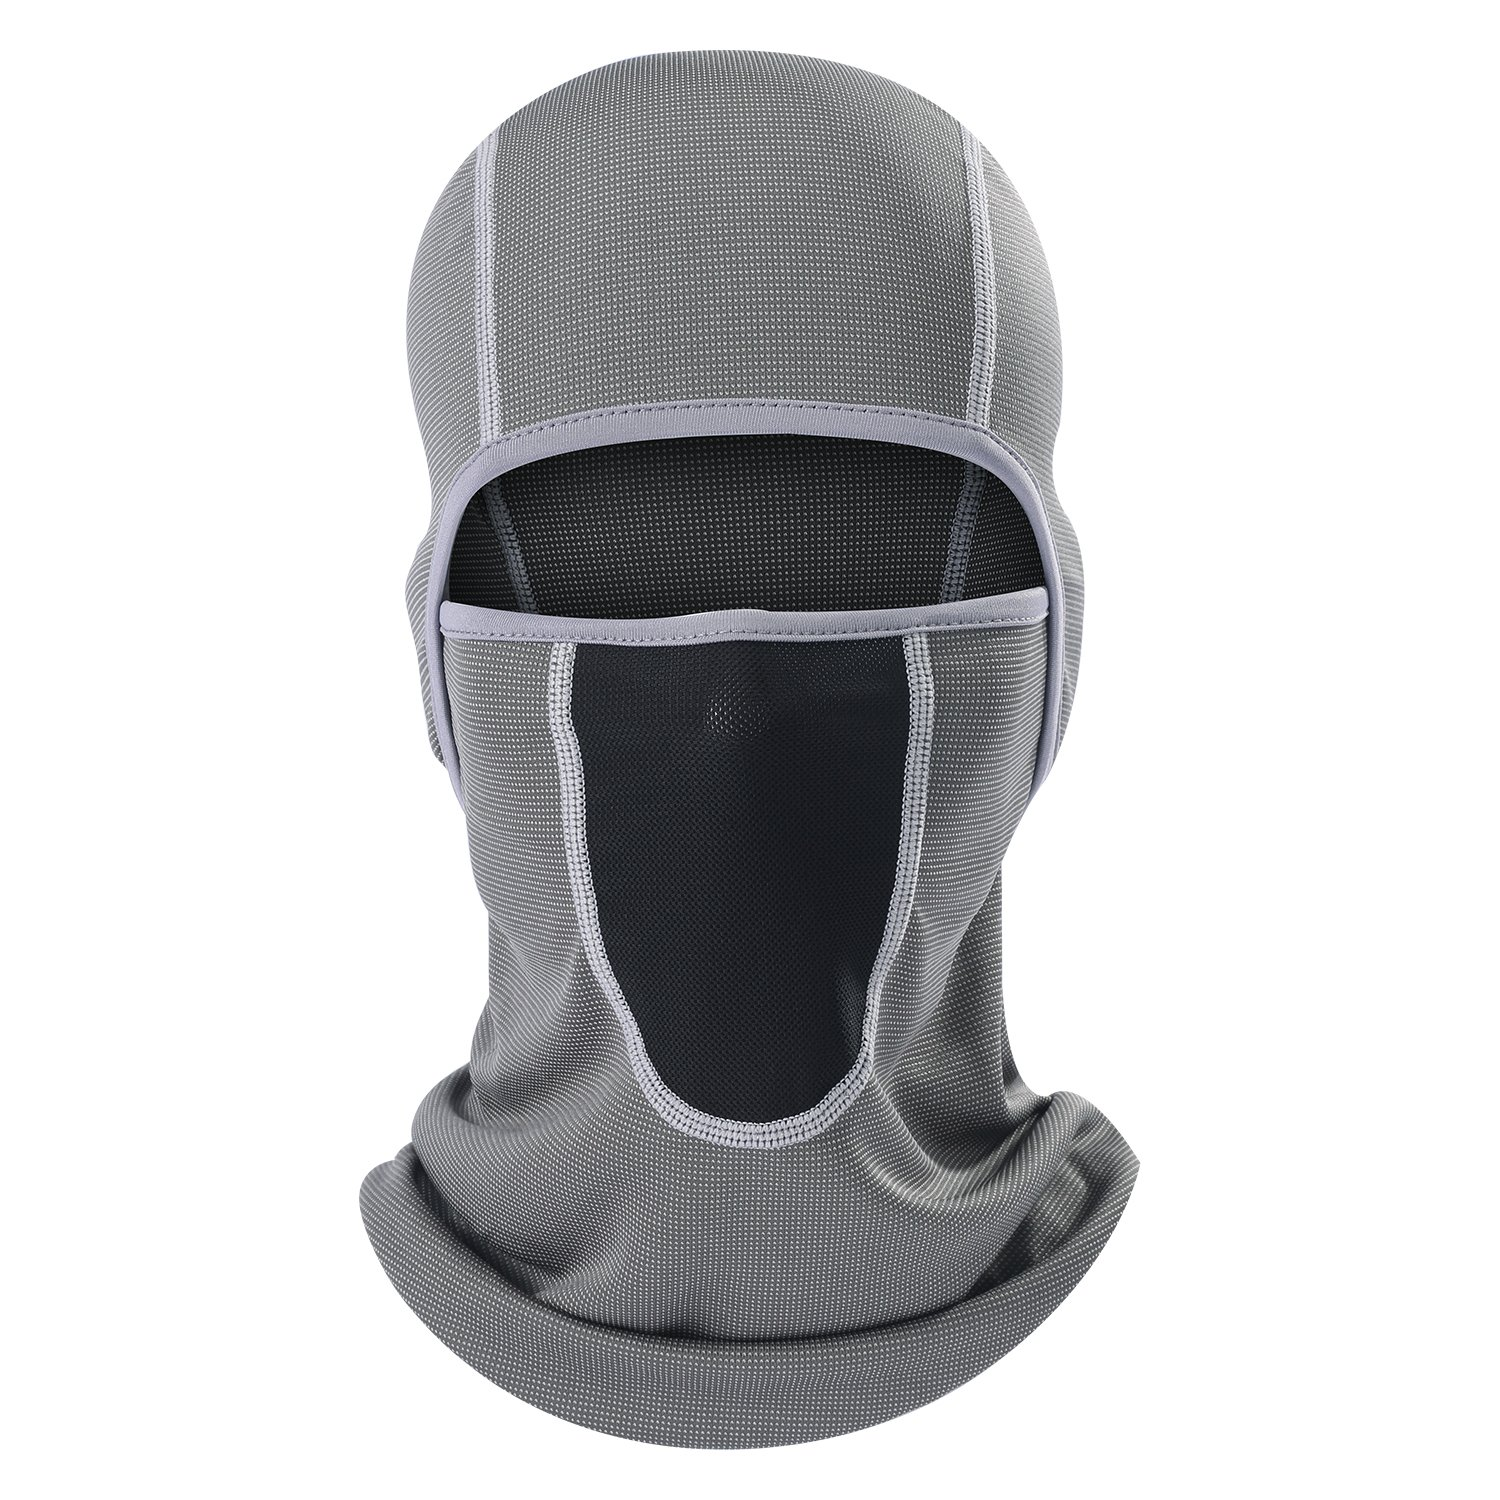 AIWOLU Balaclava -Windproof and Dust Protection Balaclava Face Mask Breathable Outdoor Sports Motorcycle Cycling and Trekking Neck Cover Hood (AWL-B005-AL-14)